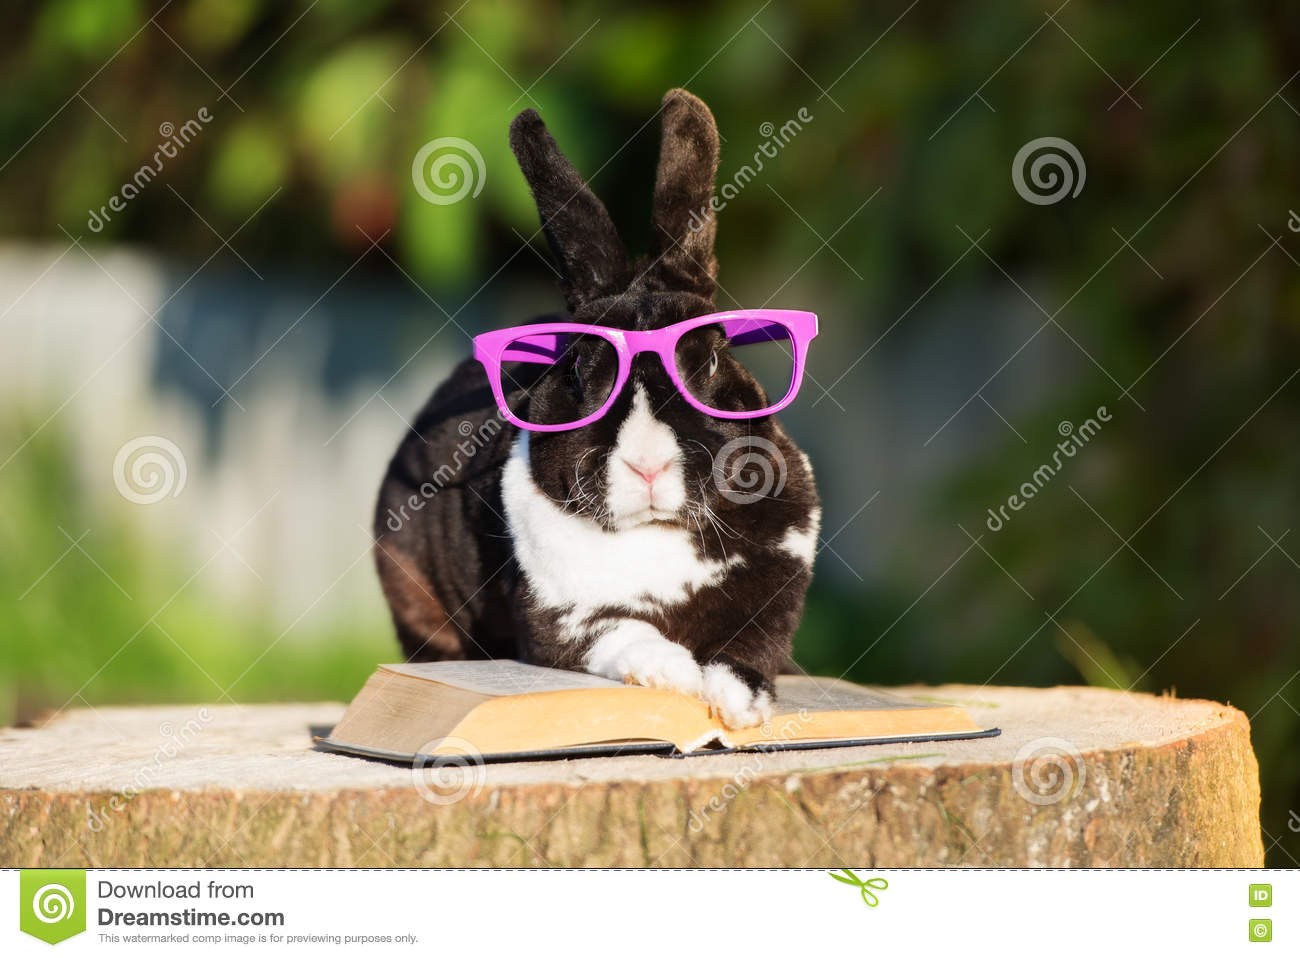 Funny rabbit funny rabbit pictures pictures of rabbits funny - Book Funny Glasses Rabbit